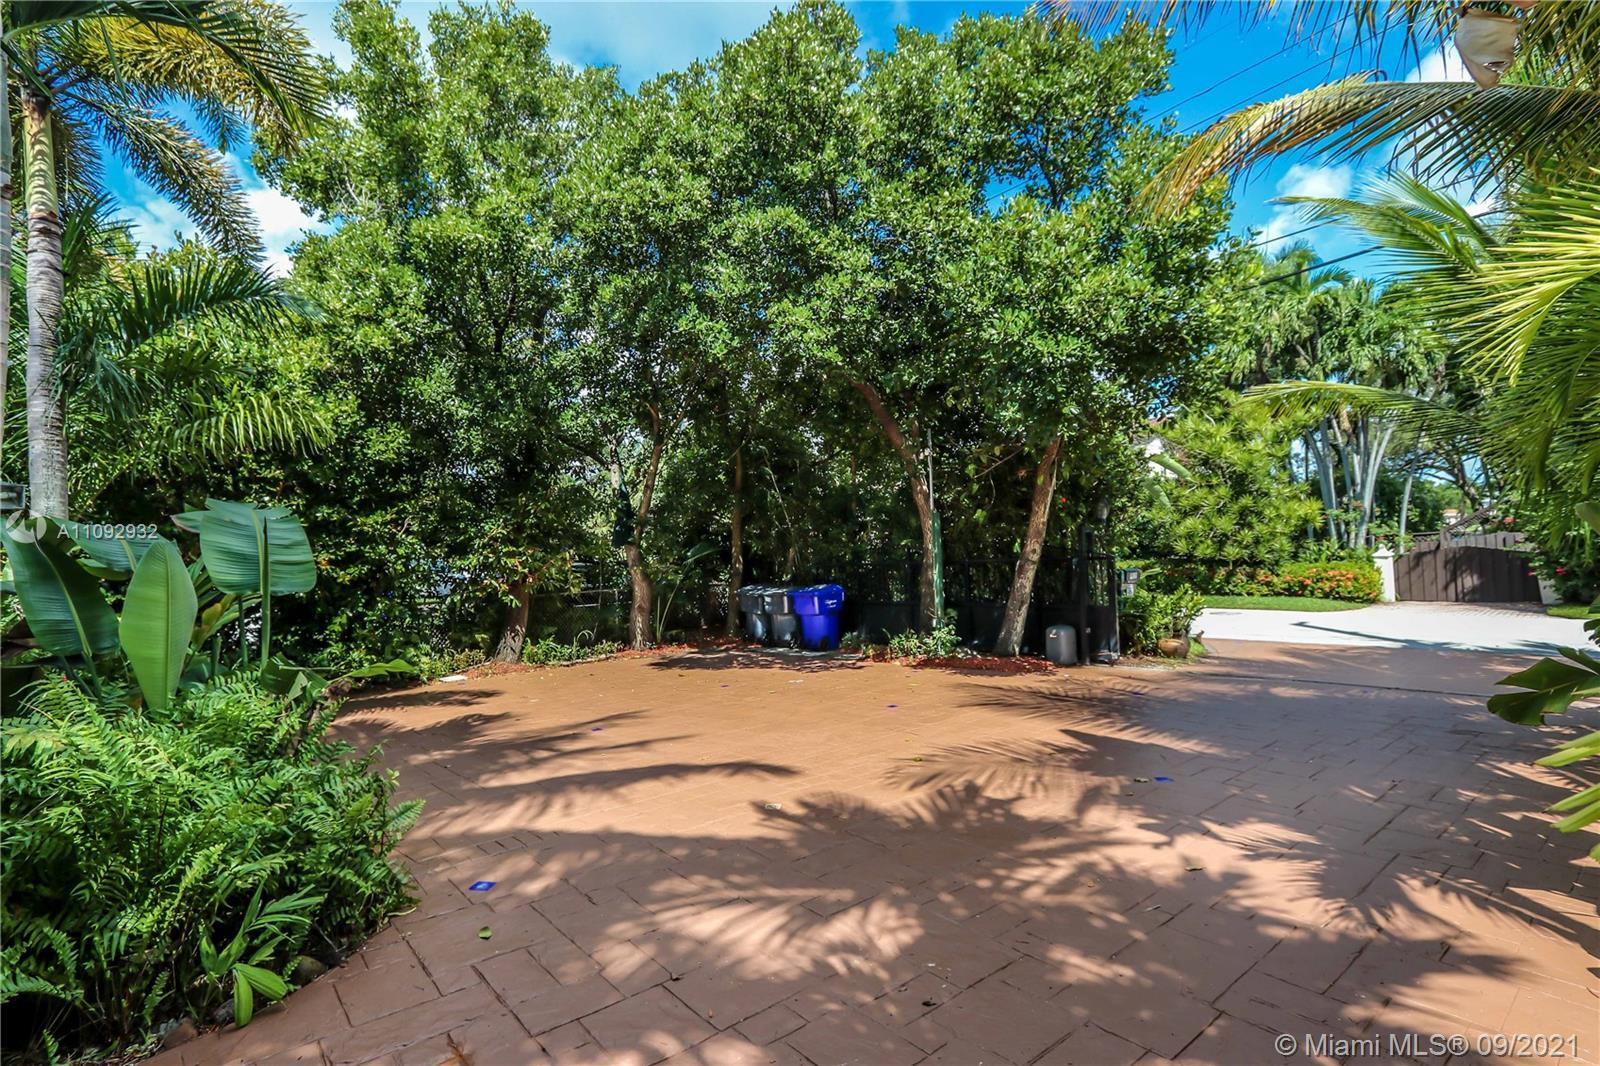 CHARMING  3BED / 2BATH HOME LOCATED IN PRESTIGIOUS S NORTHLAKE DR ACROSS FROM MUTI-MILLION DOLLAR PR